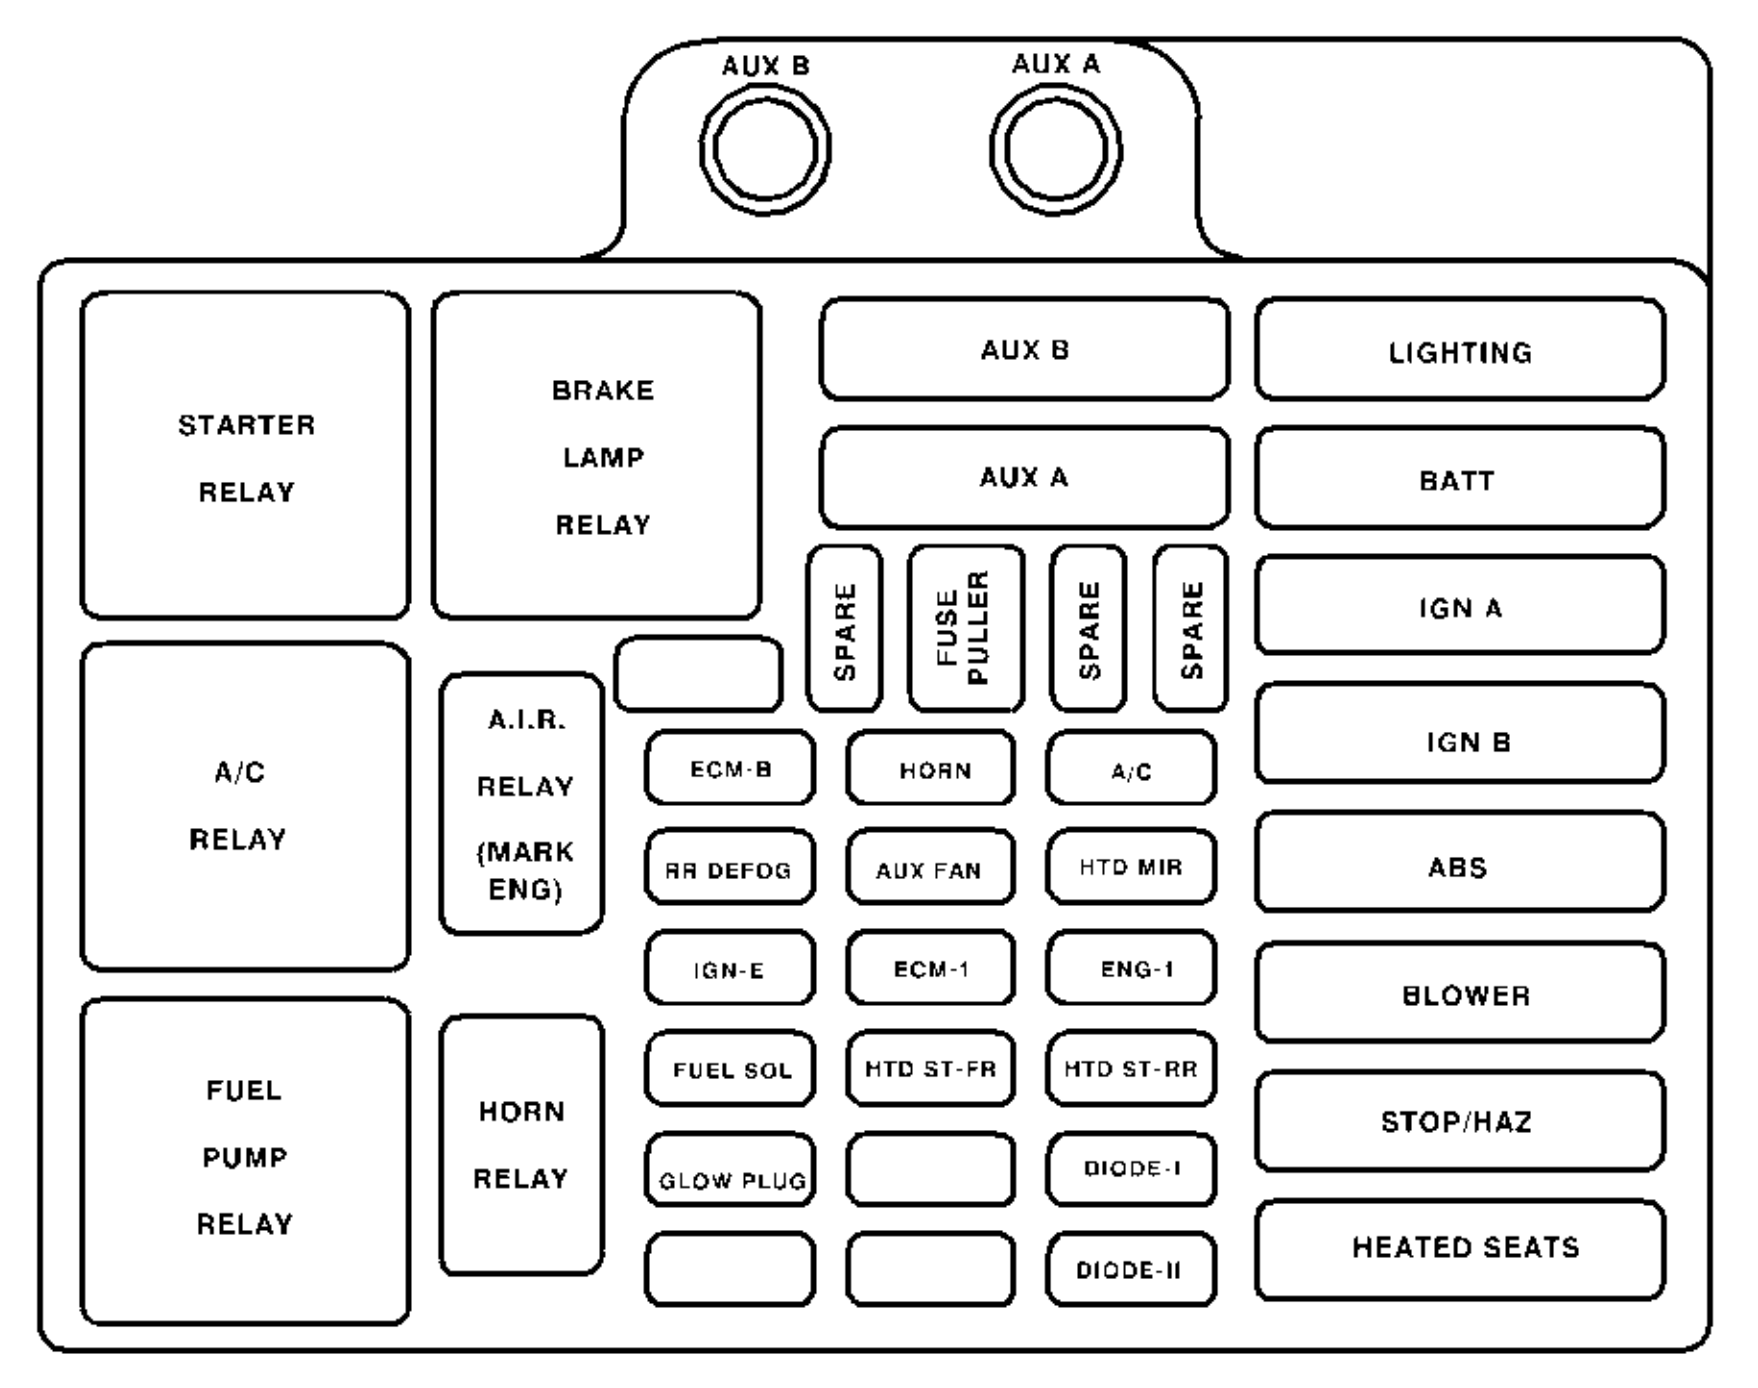 hight resolution of 2010 tahoe fuse box wiring diagram2007 chevy silverado 1500 fuse box diagramt wiring library 2010 tahoe